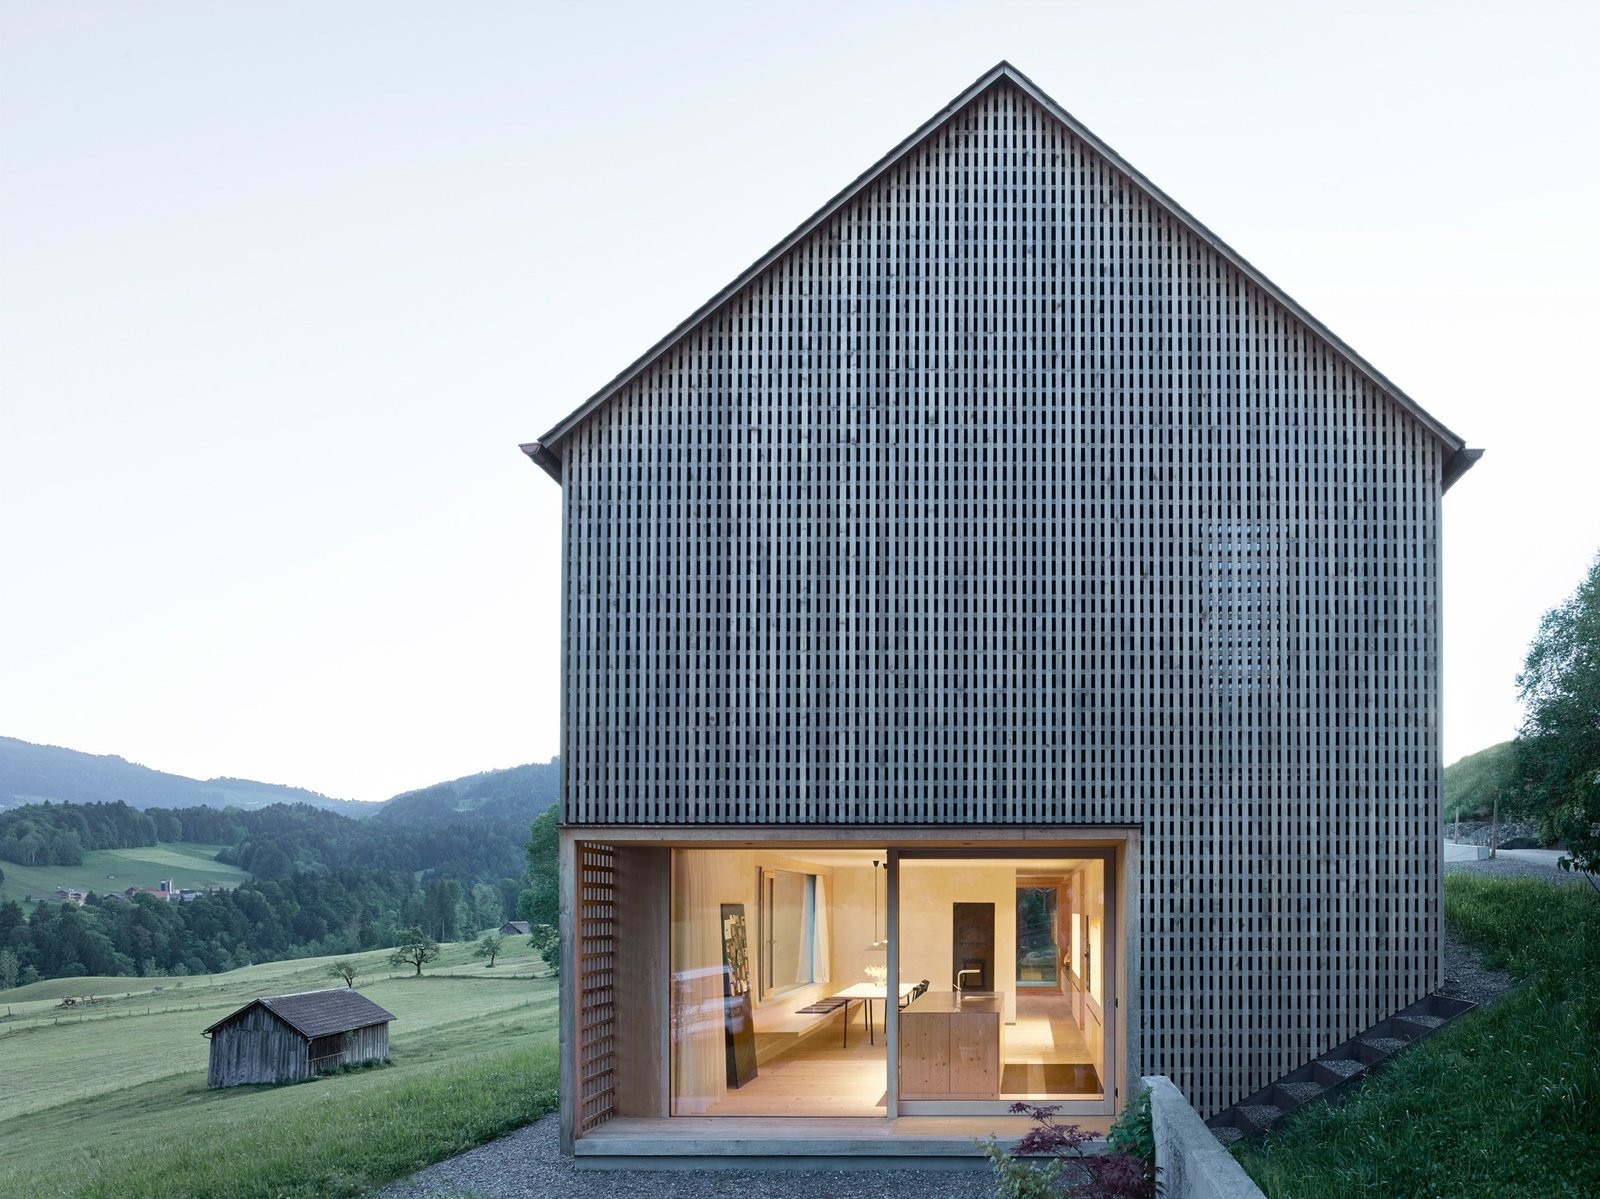 Articles about simple gabled house features intricate latticework shell on Dwell.com